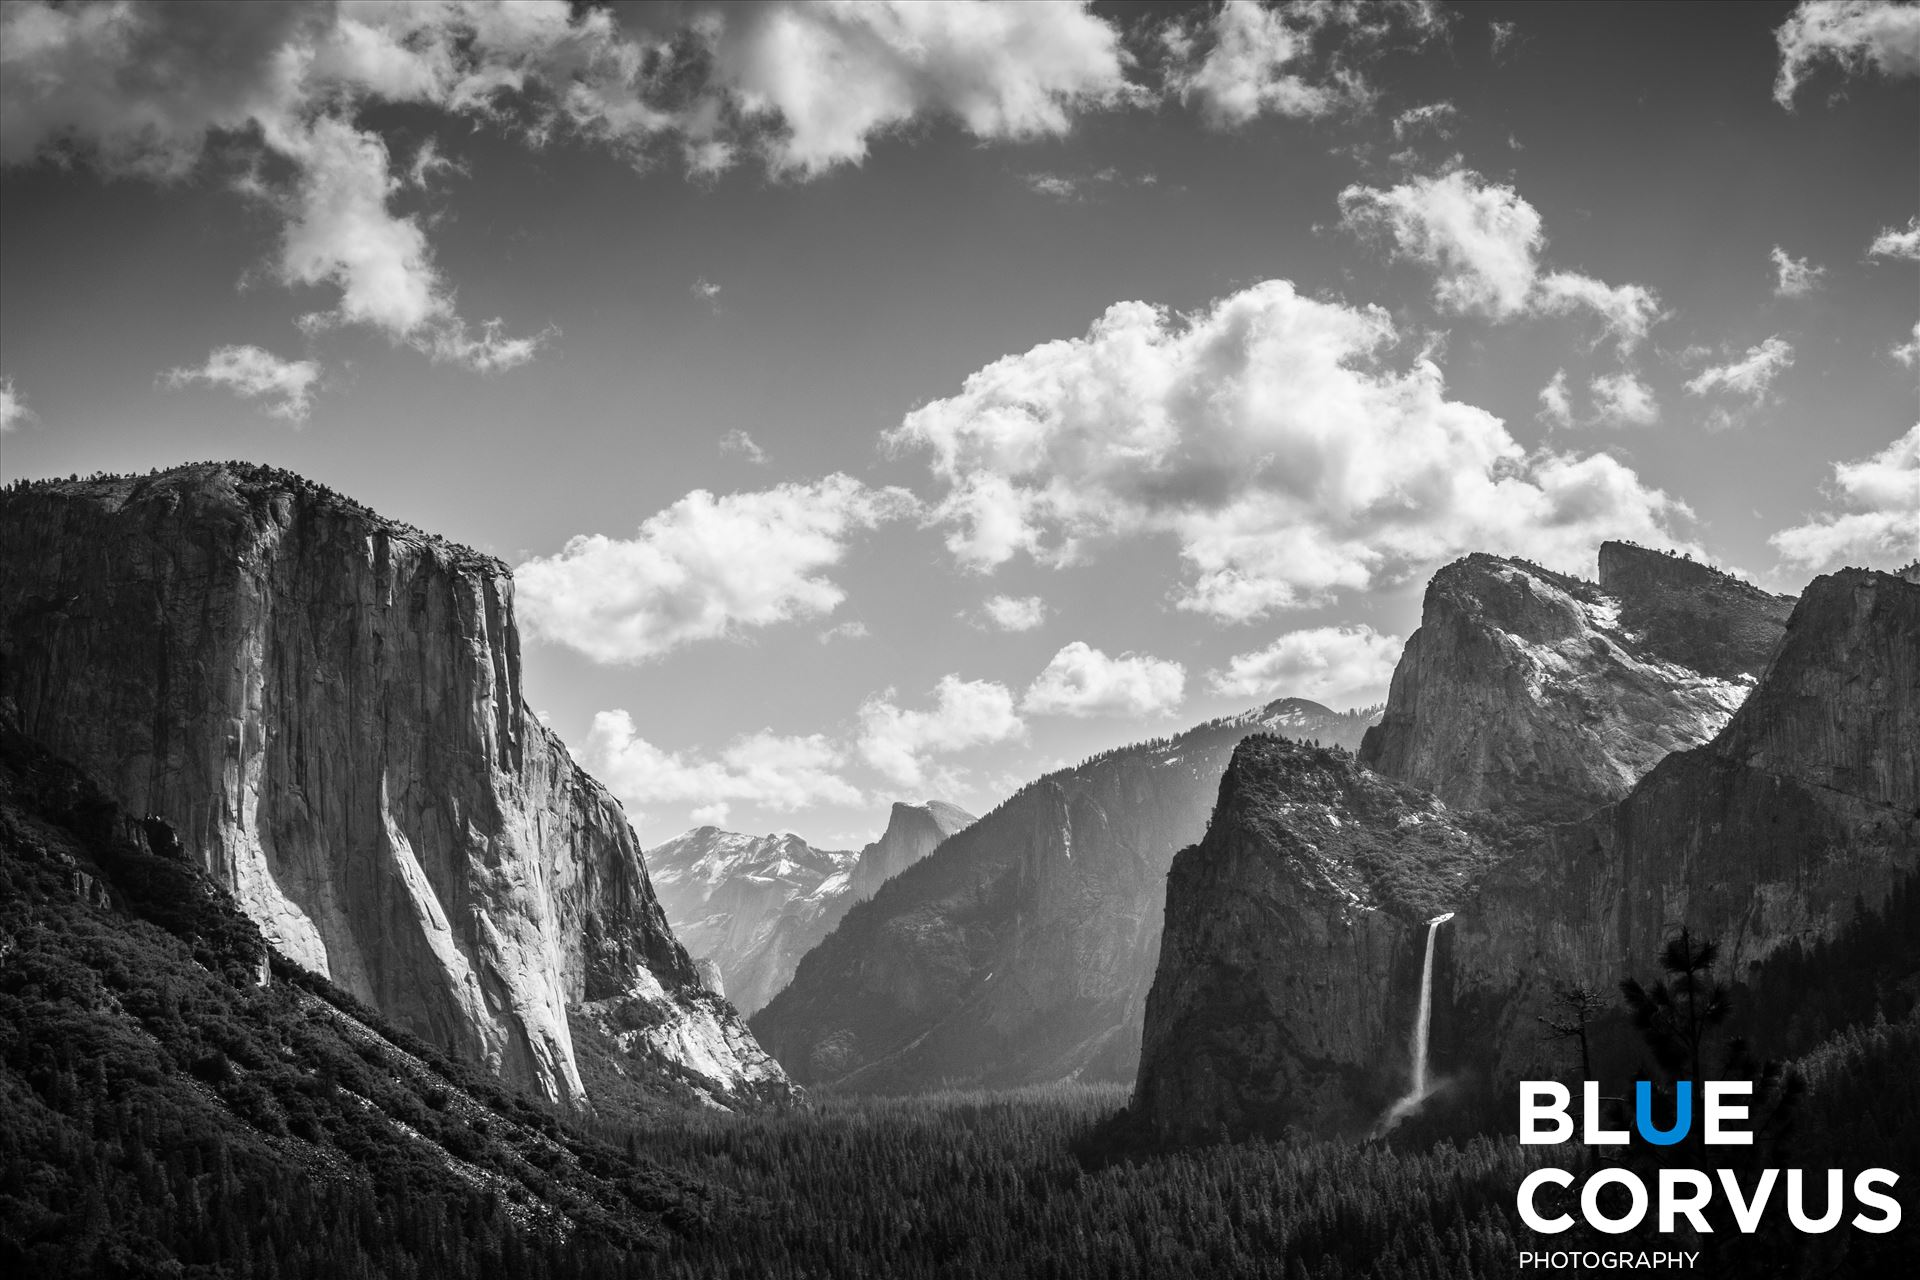 \x22The Grandeur of Yosemite\x22 - Tunnel View of Yosemite by Eddie Zamora